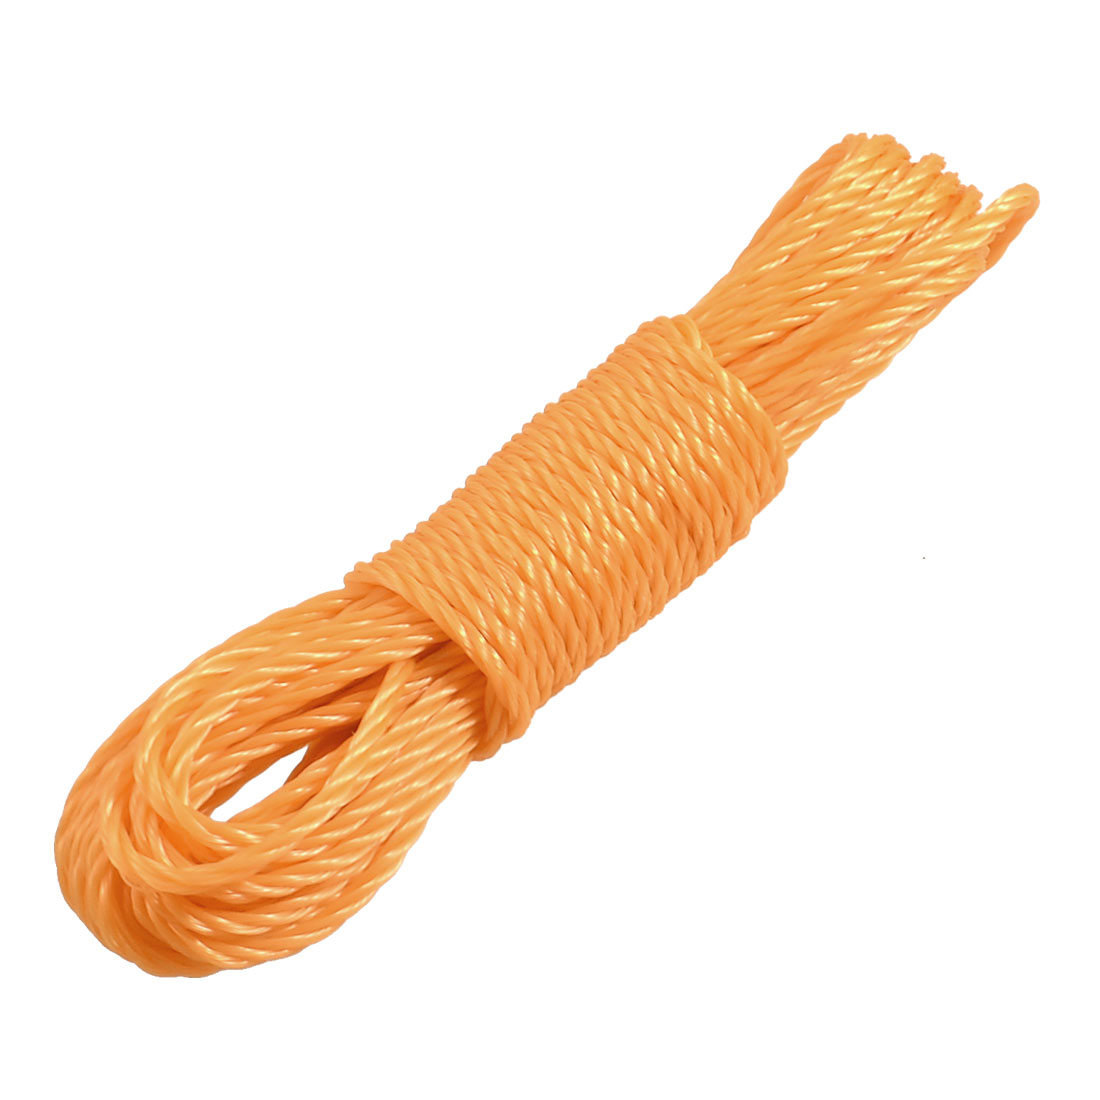 30.8Ft Long Clothes Hang Rope Nylon String Clothesline Yellowgreen